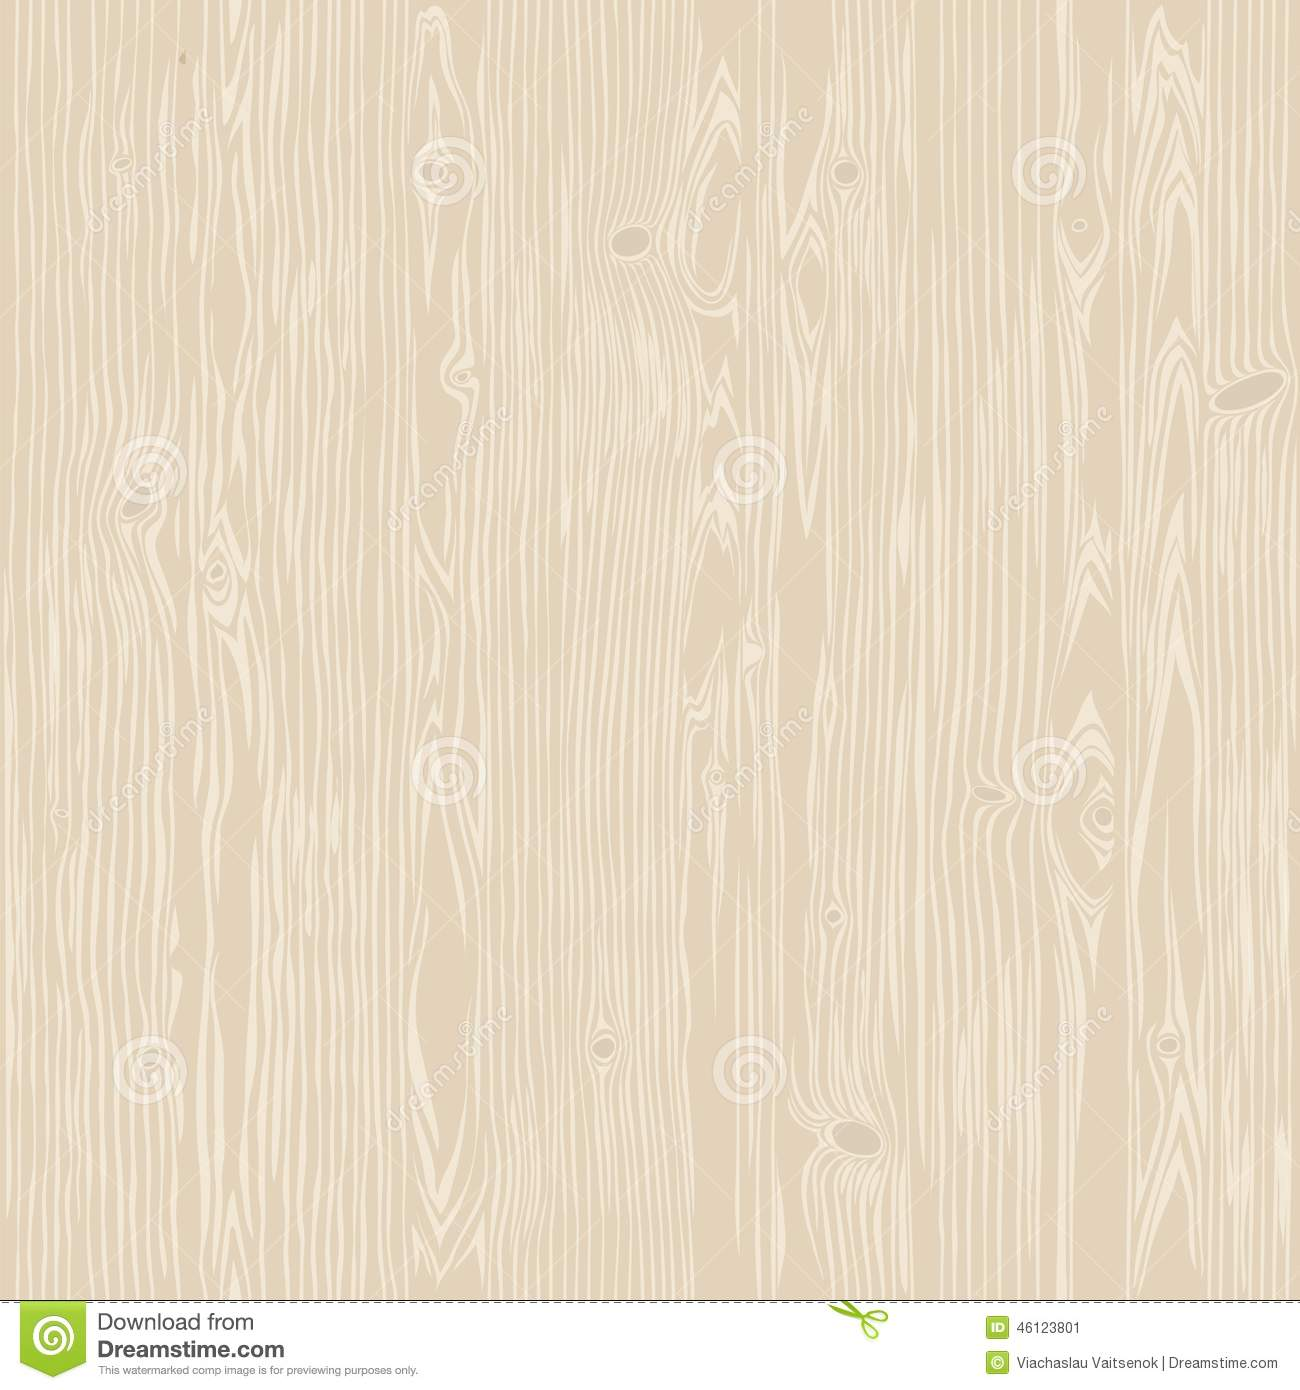 Oak wood bleached seamless texture stock vector image